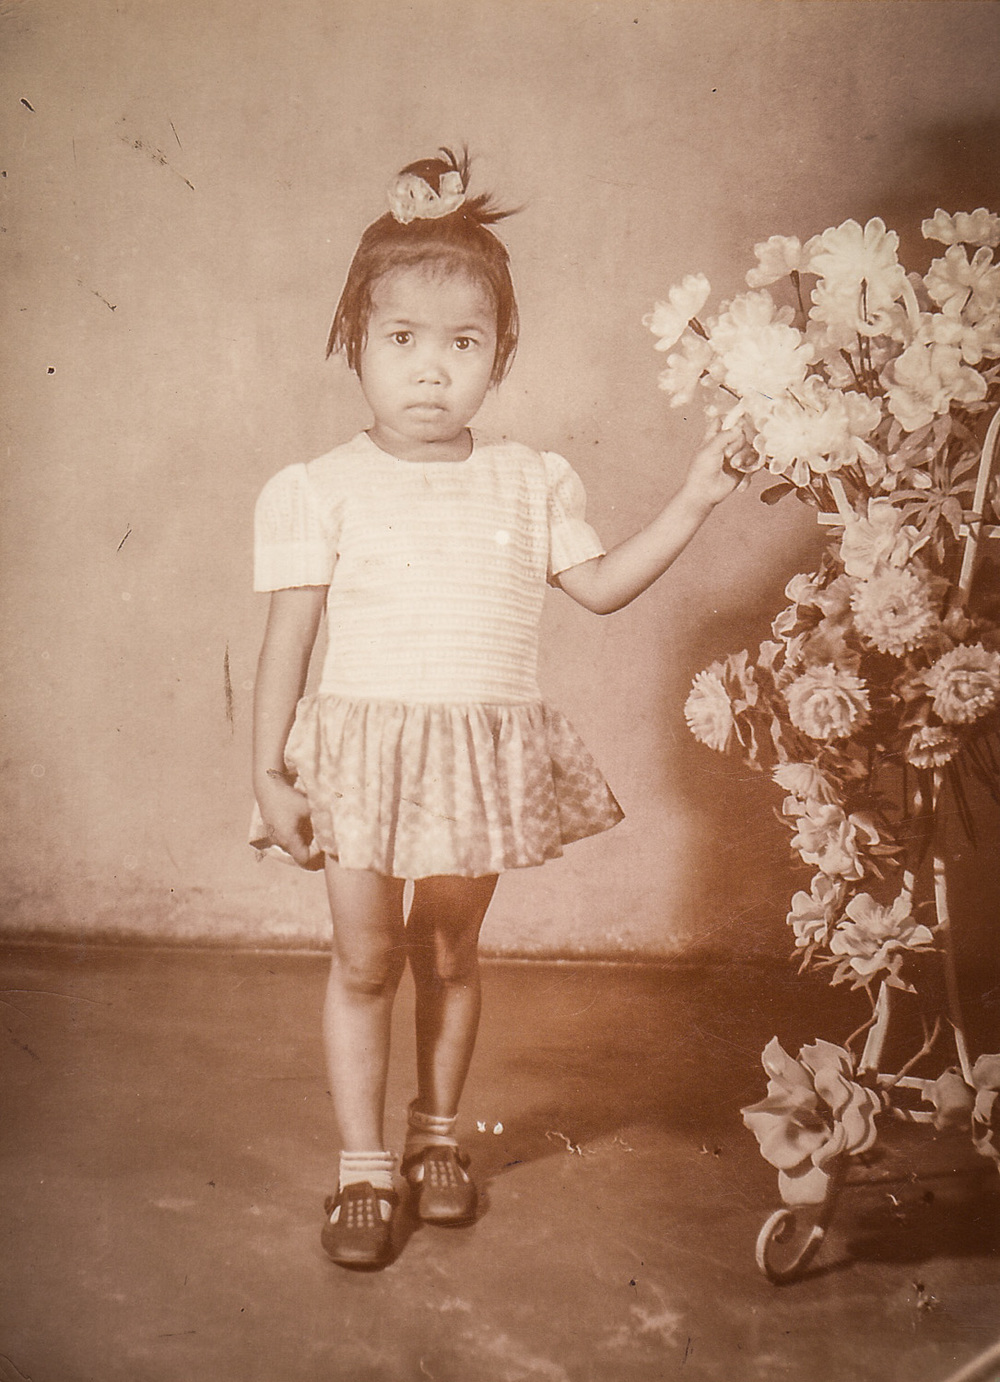 My fourth sister, Ate Felyn. She was probably 4yrs old when this photo was taken.